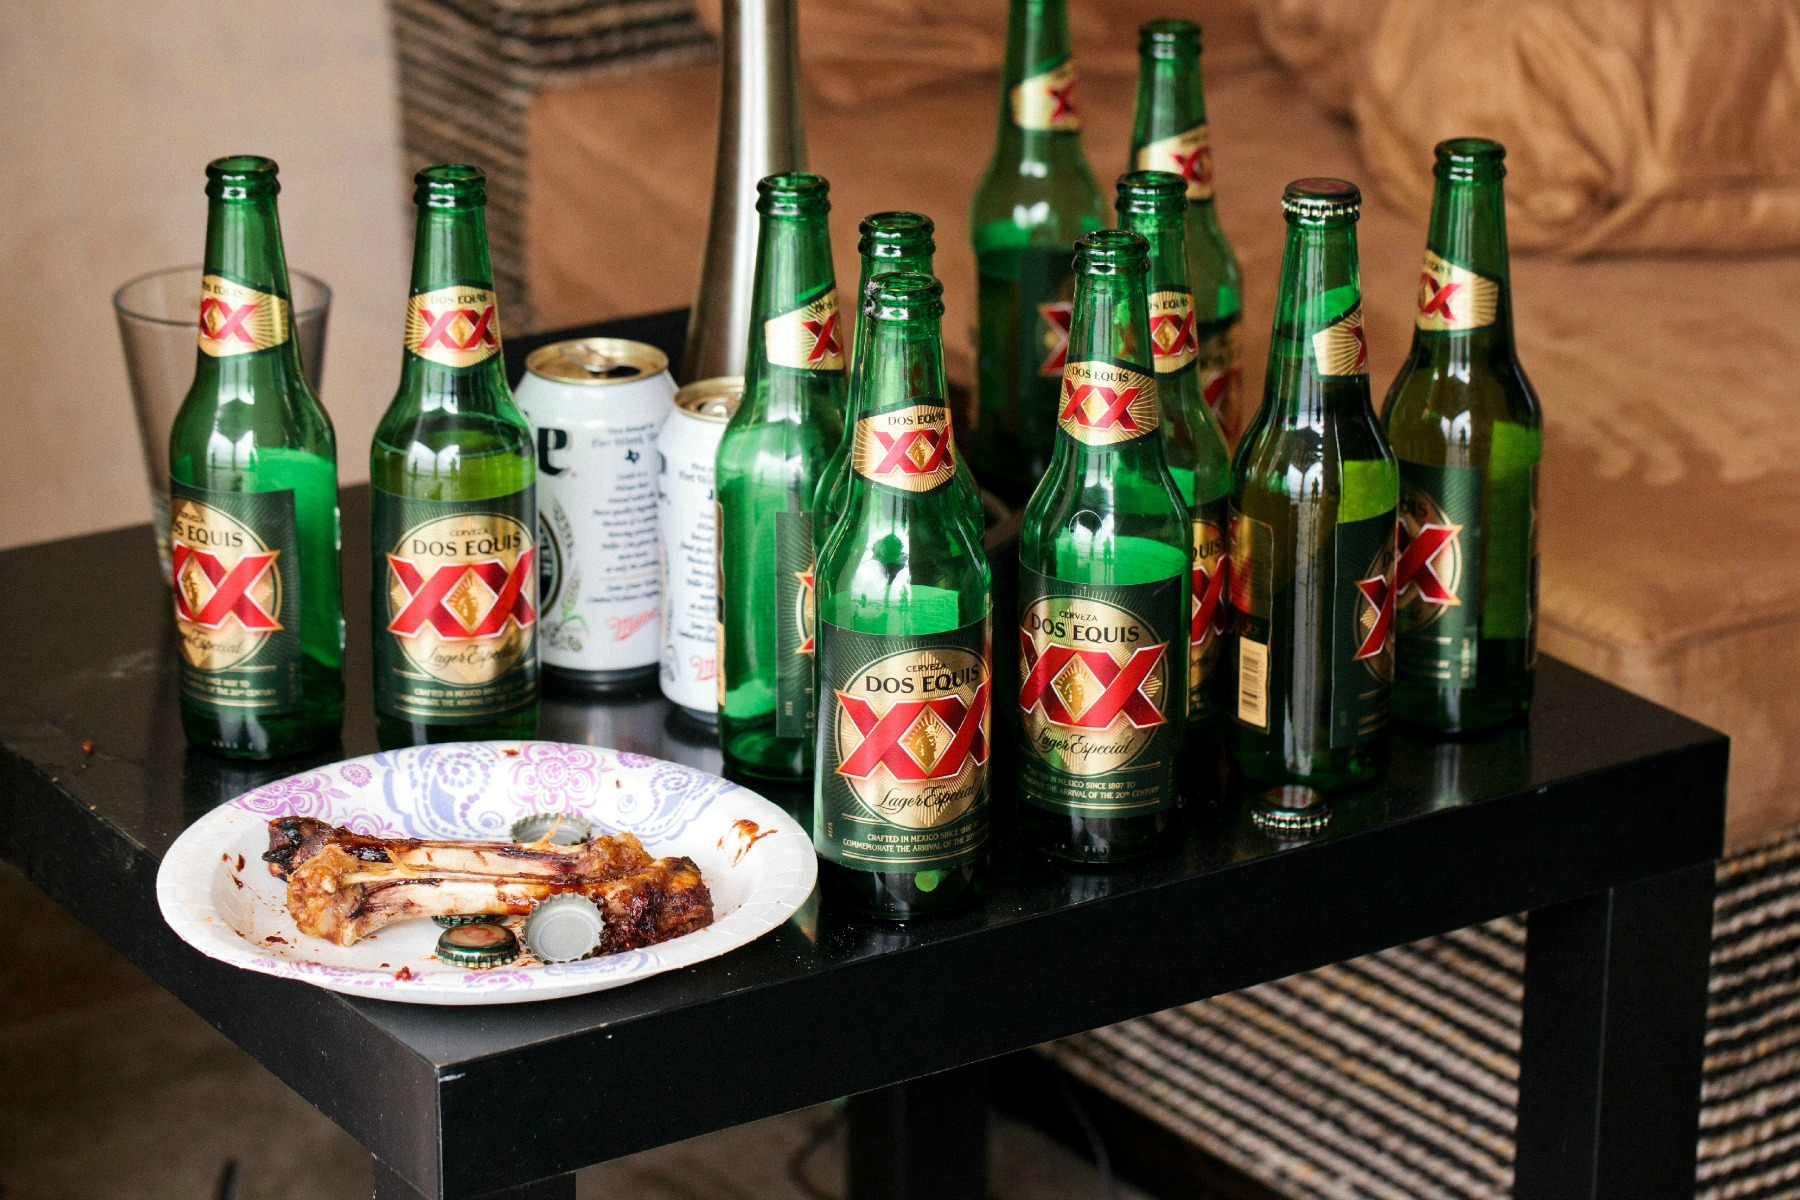 dos equis beer bottles leftover from the bachelor party